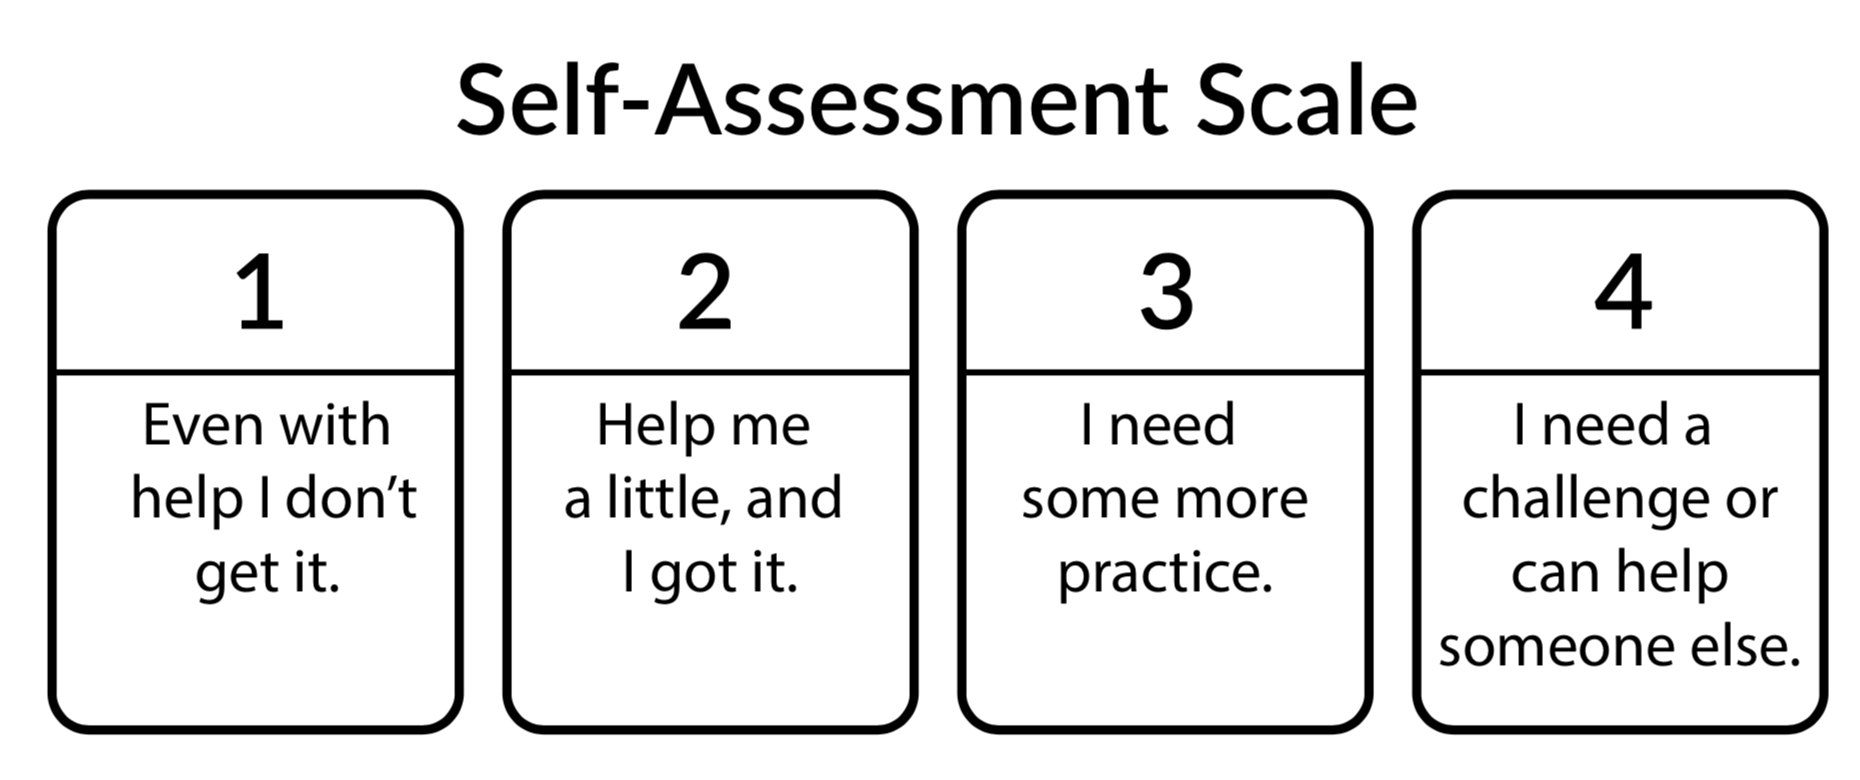 hight resolution of Self-Assessment Scale - TeacherVision